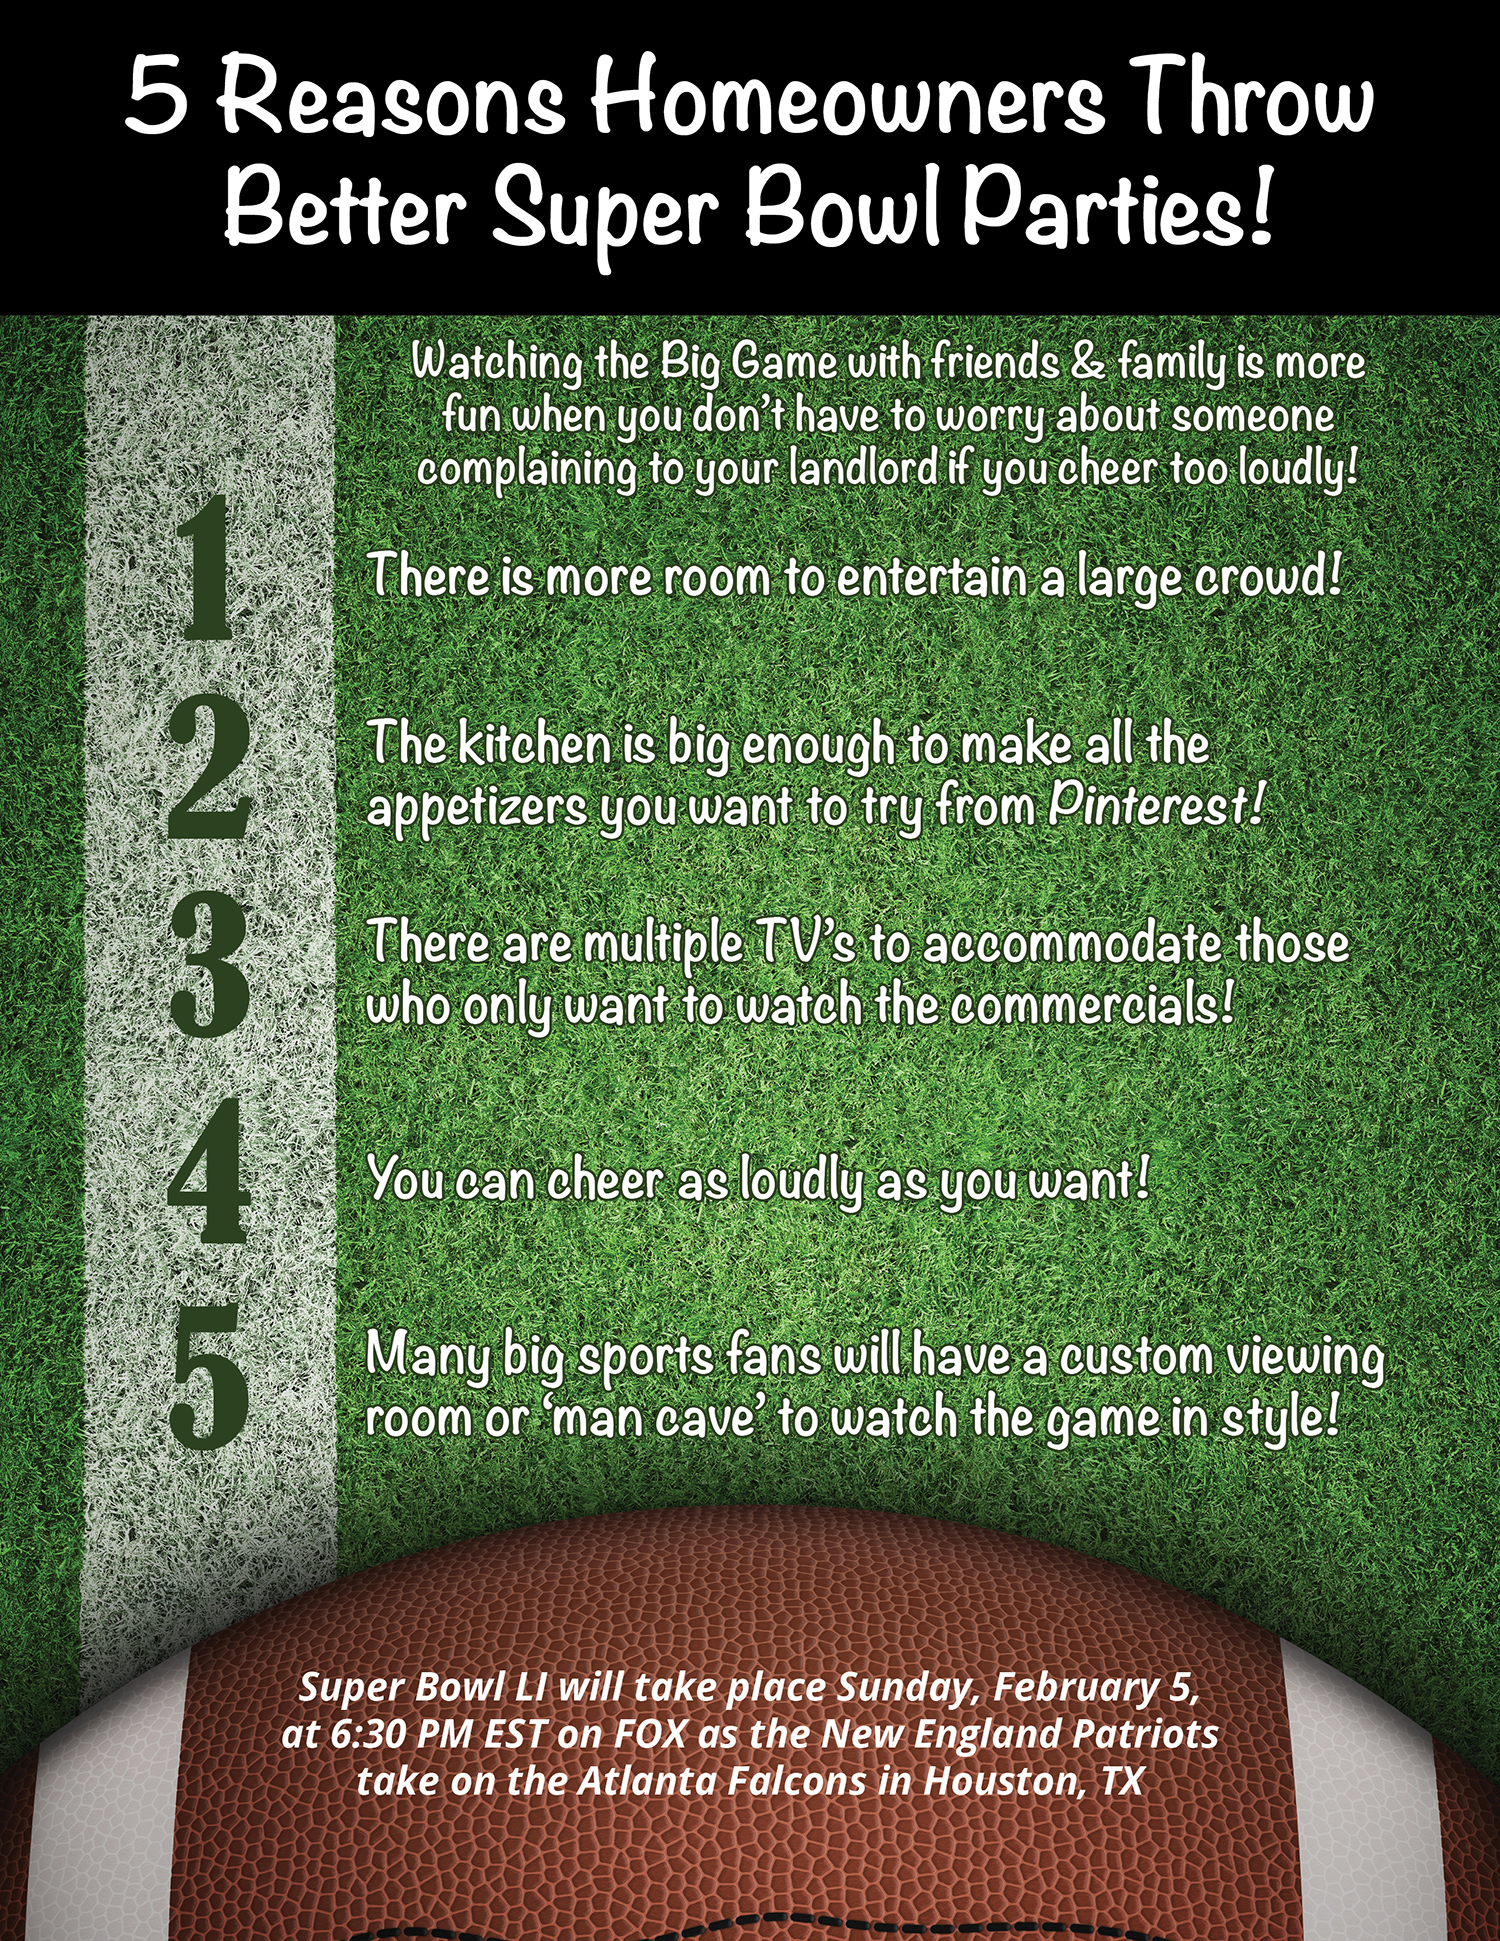 5 Reasons Homeowners Throw Better Super Bowl Parties! [INFOGRAPHIC]   Simplifying The Market